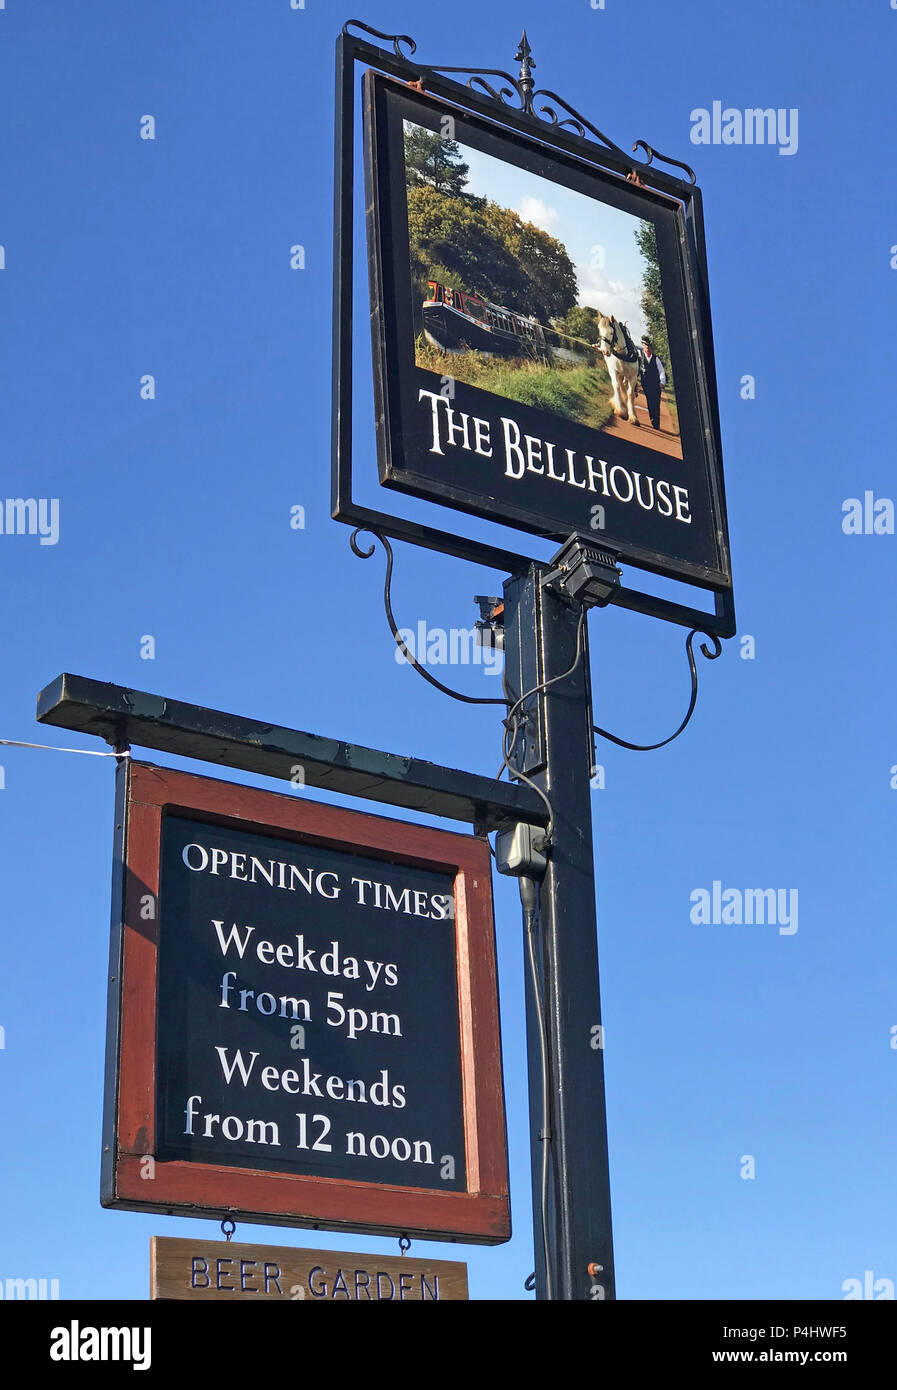 The Bellhouse Club Sign, opening hours,weekdays from 5pm,Weekends from 12 noon, Bellhouse lane,Grappenhall,Warrington,Cheshire Stock Photo